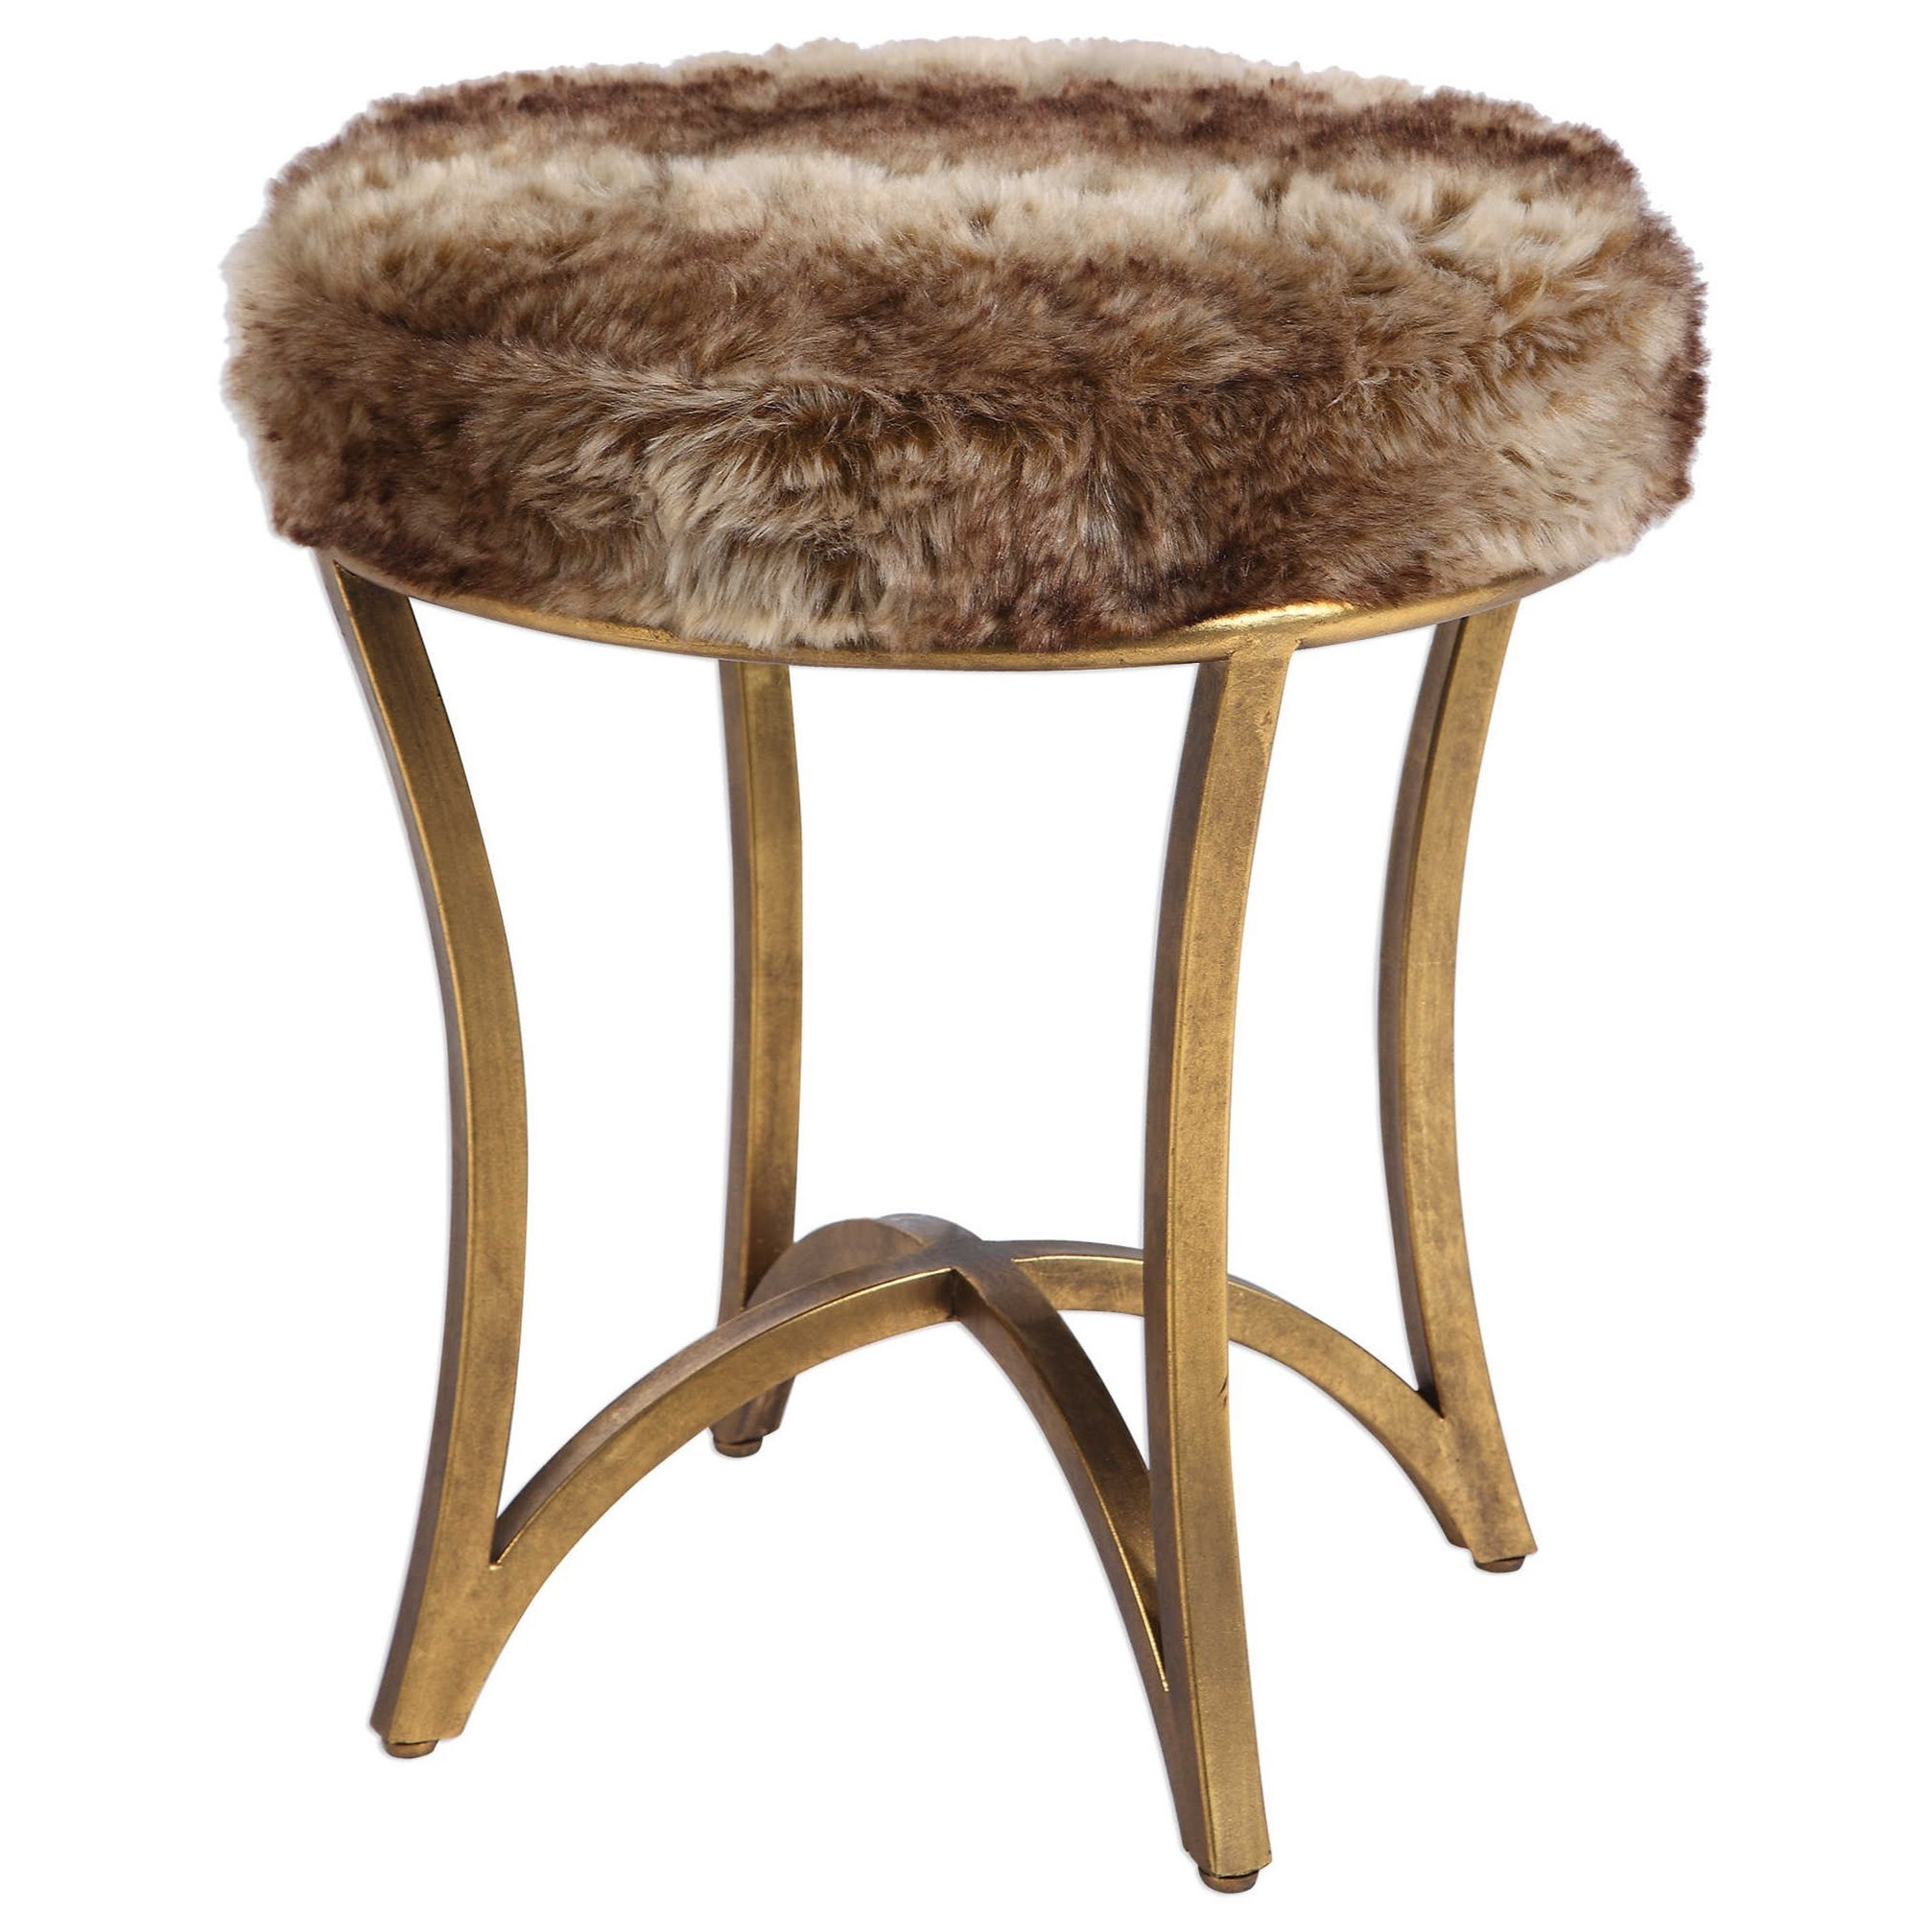 Accent Furniture - Stools Bernett Fur Accent Stool by Uttermost at Goffena Furniture & Mattress Center